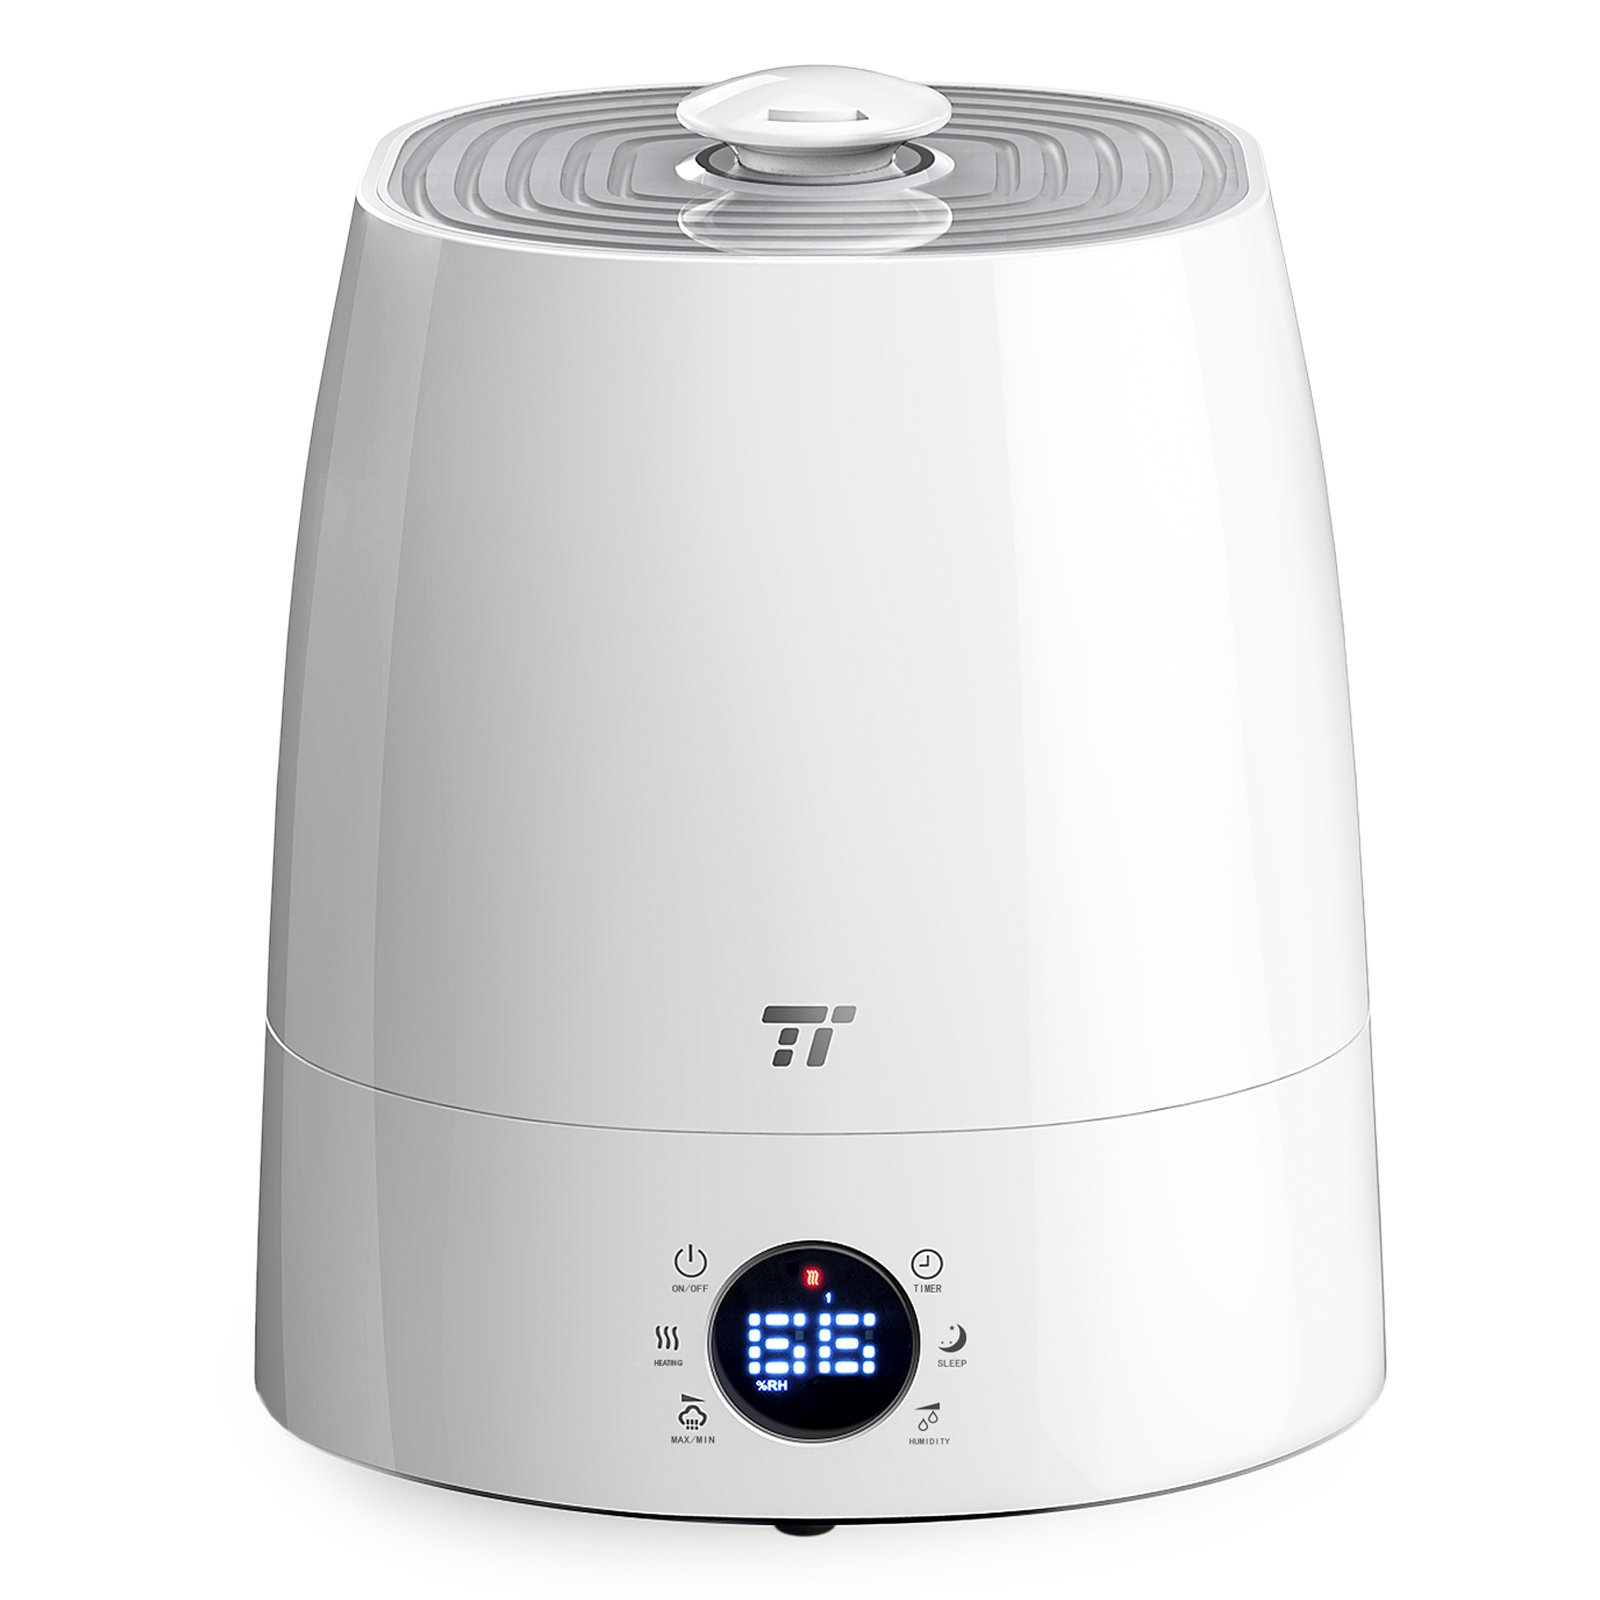 TaoTronics Warm & Cool Mist Humidifier, Ultrasonic Humidifiers for Bedroom, LED Display, External Humidity Sensor, Large 5.5L/1.46 Gallon Capacity, 360° Rotatable Nozzle, US 110V